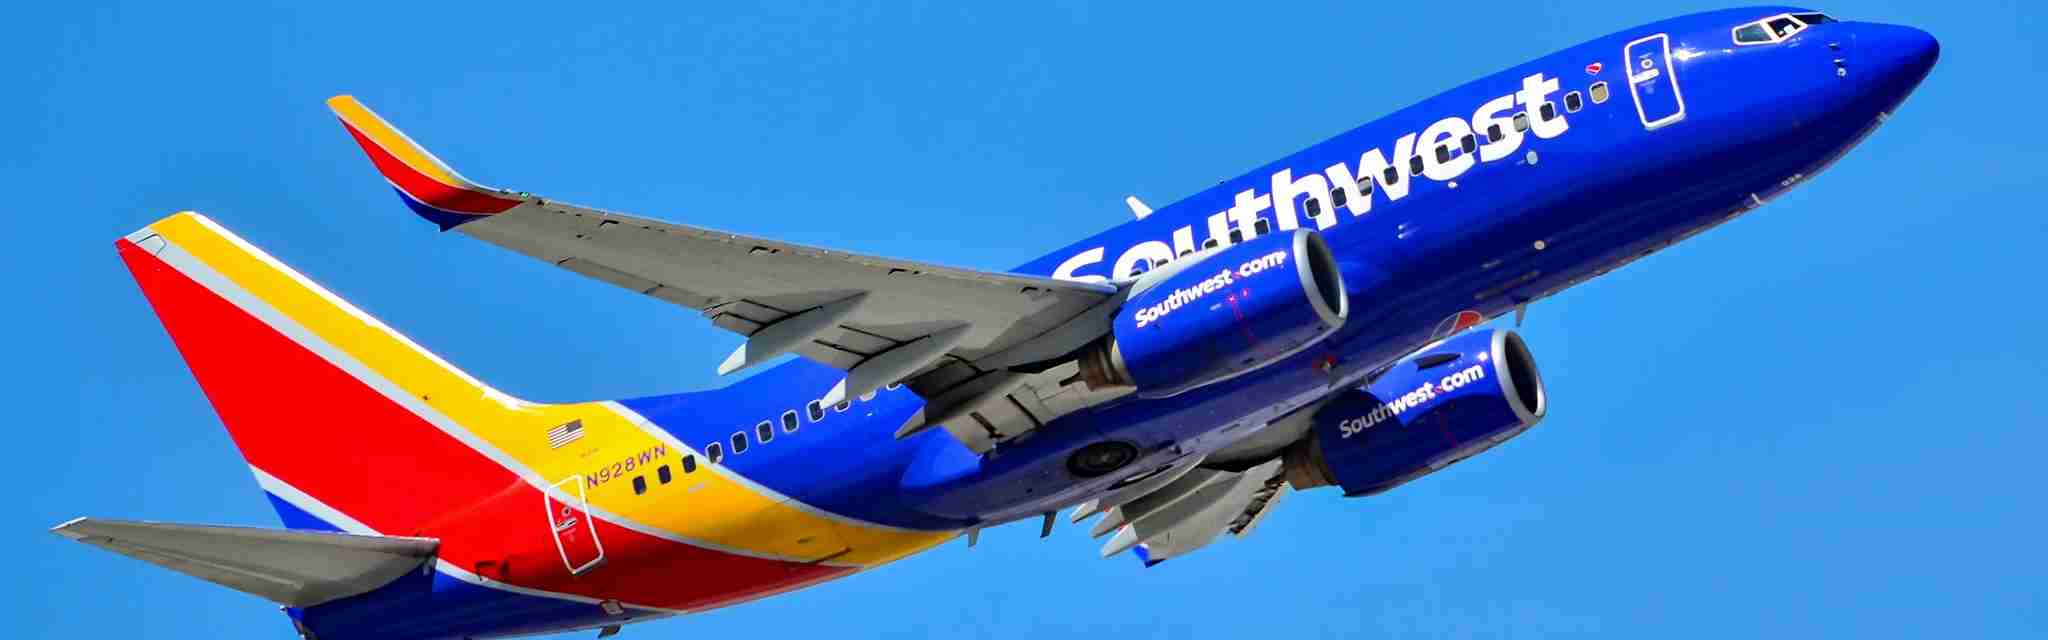 Southwest 737 new branding